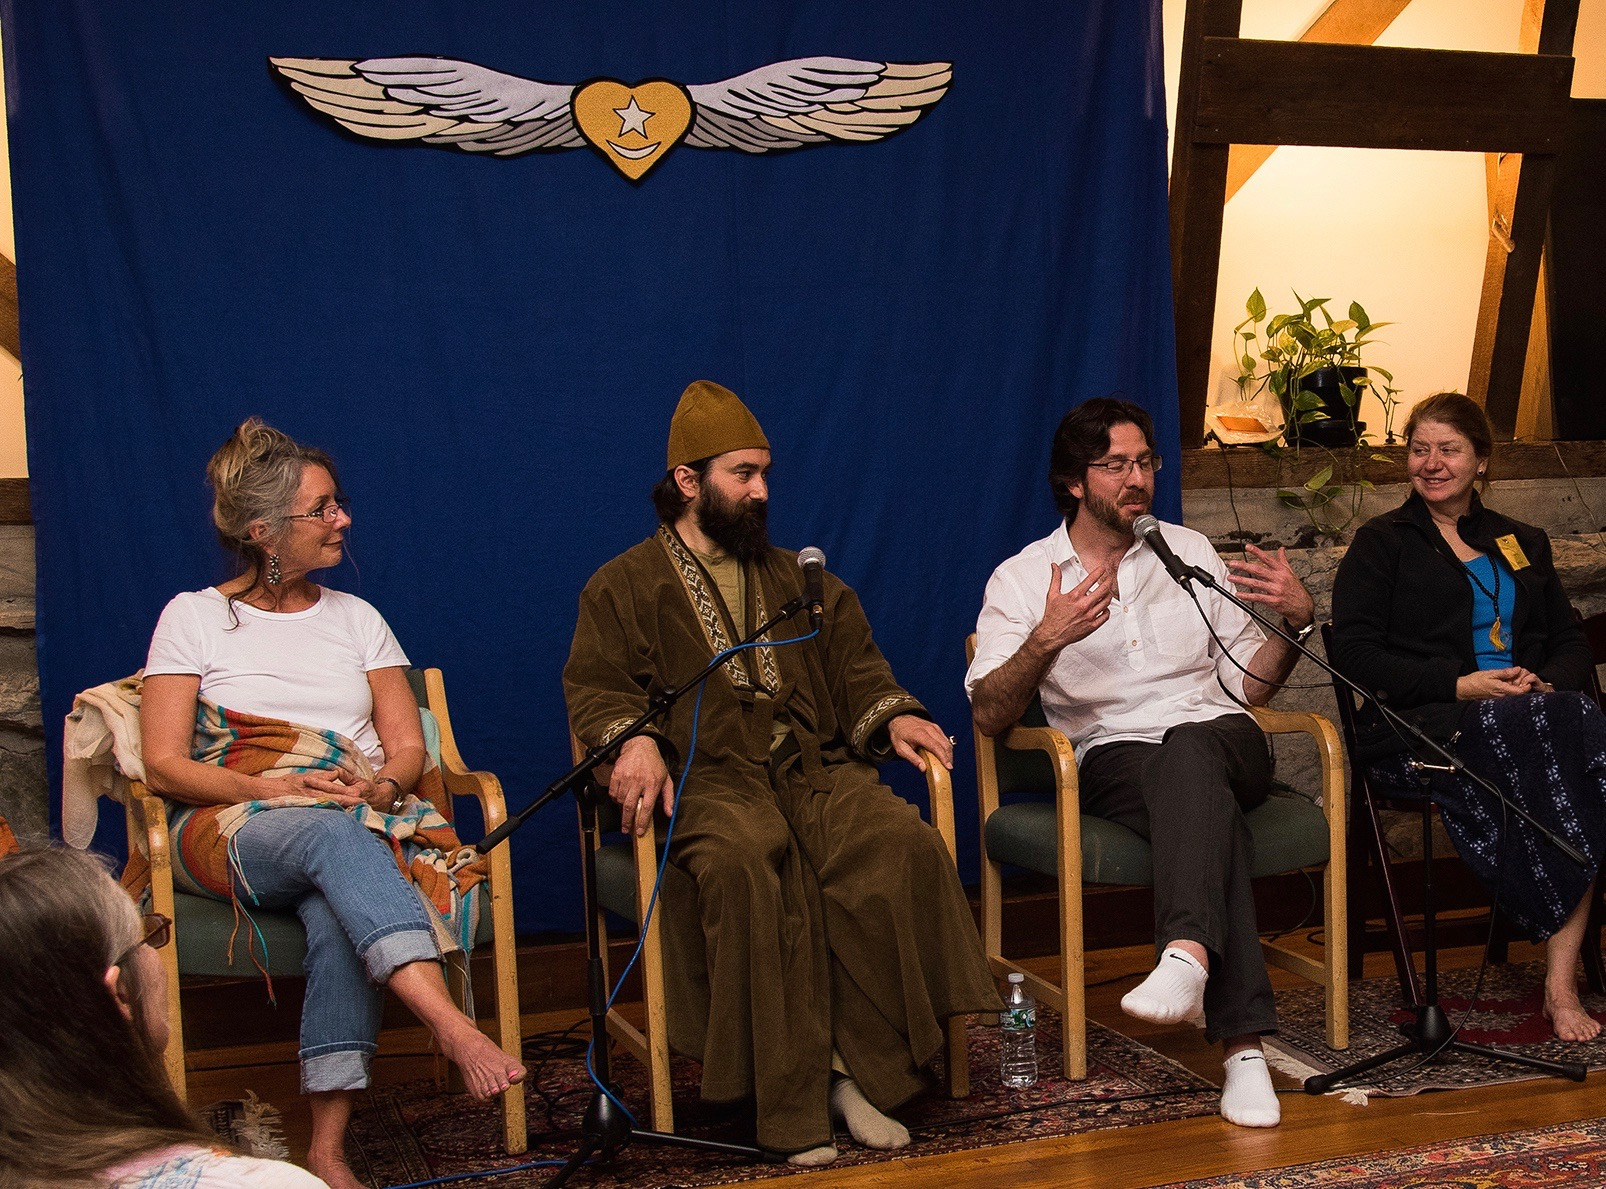 Taj Inayat, Pir Zia Inayat-Khan, and Netanel Miles-Yépez (speaking)   during the  sohbet  session in the Meditation Hall, Abode of the Message. Photo by Hilary Benas, 2015